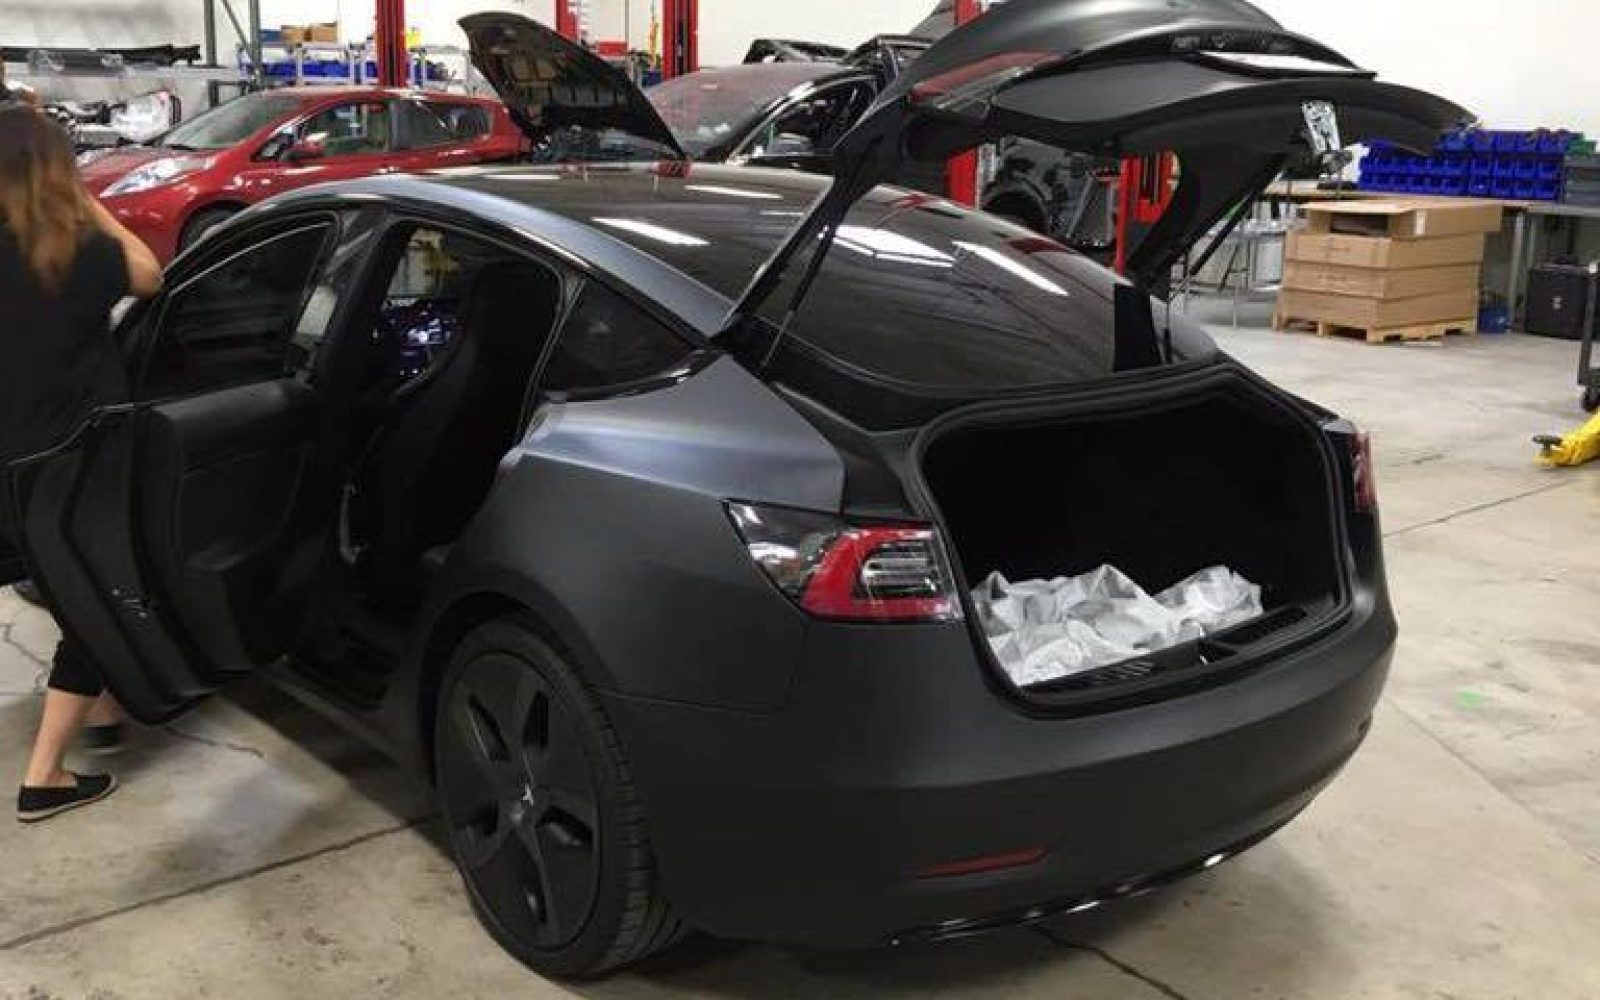 tesla model 3 39 s back seats will fold flat with 5 39 6 39 39 of space in the back electrek. Black Bedroom Furniture Sets. Home Design Ideas